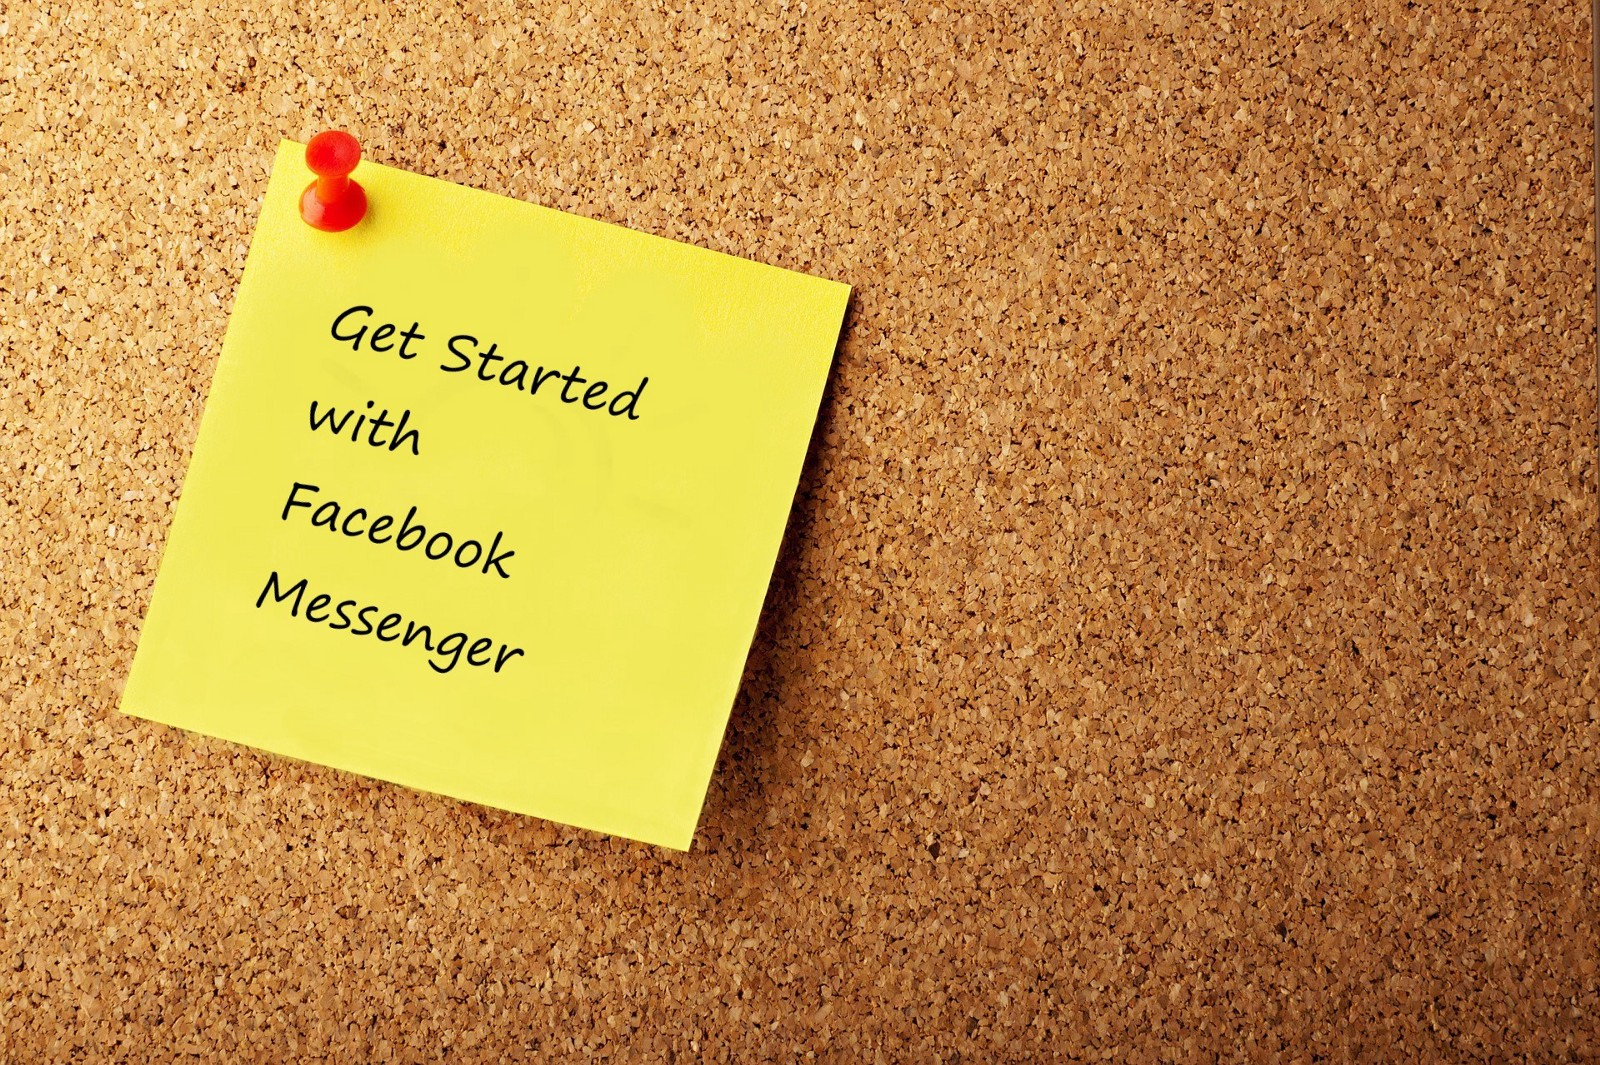 How To Set Up Facebook Messenger For Business Consumer Messaging